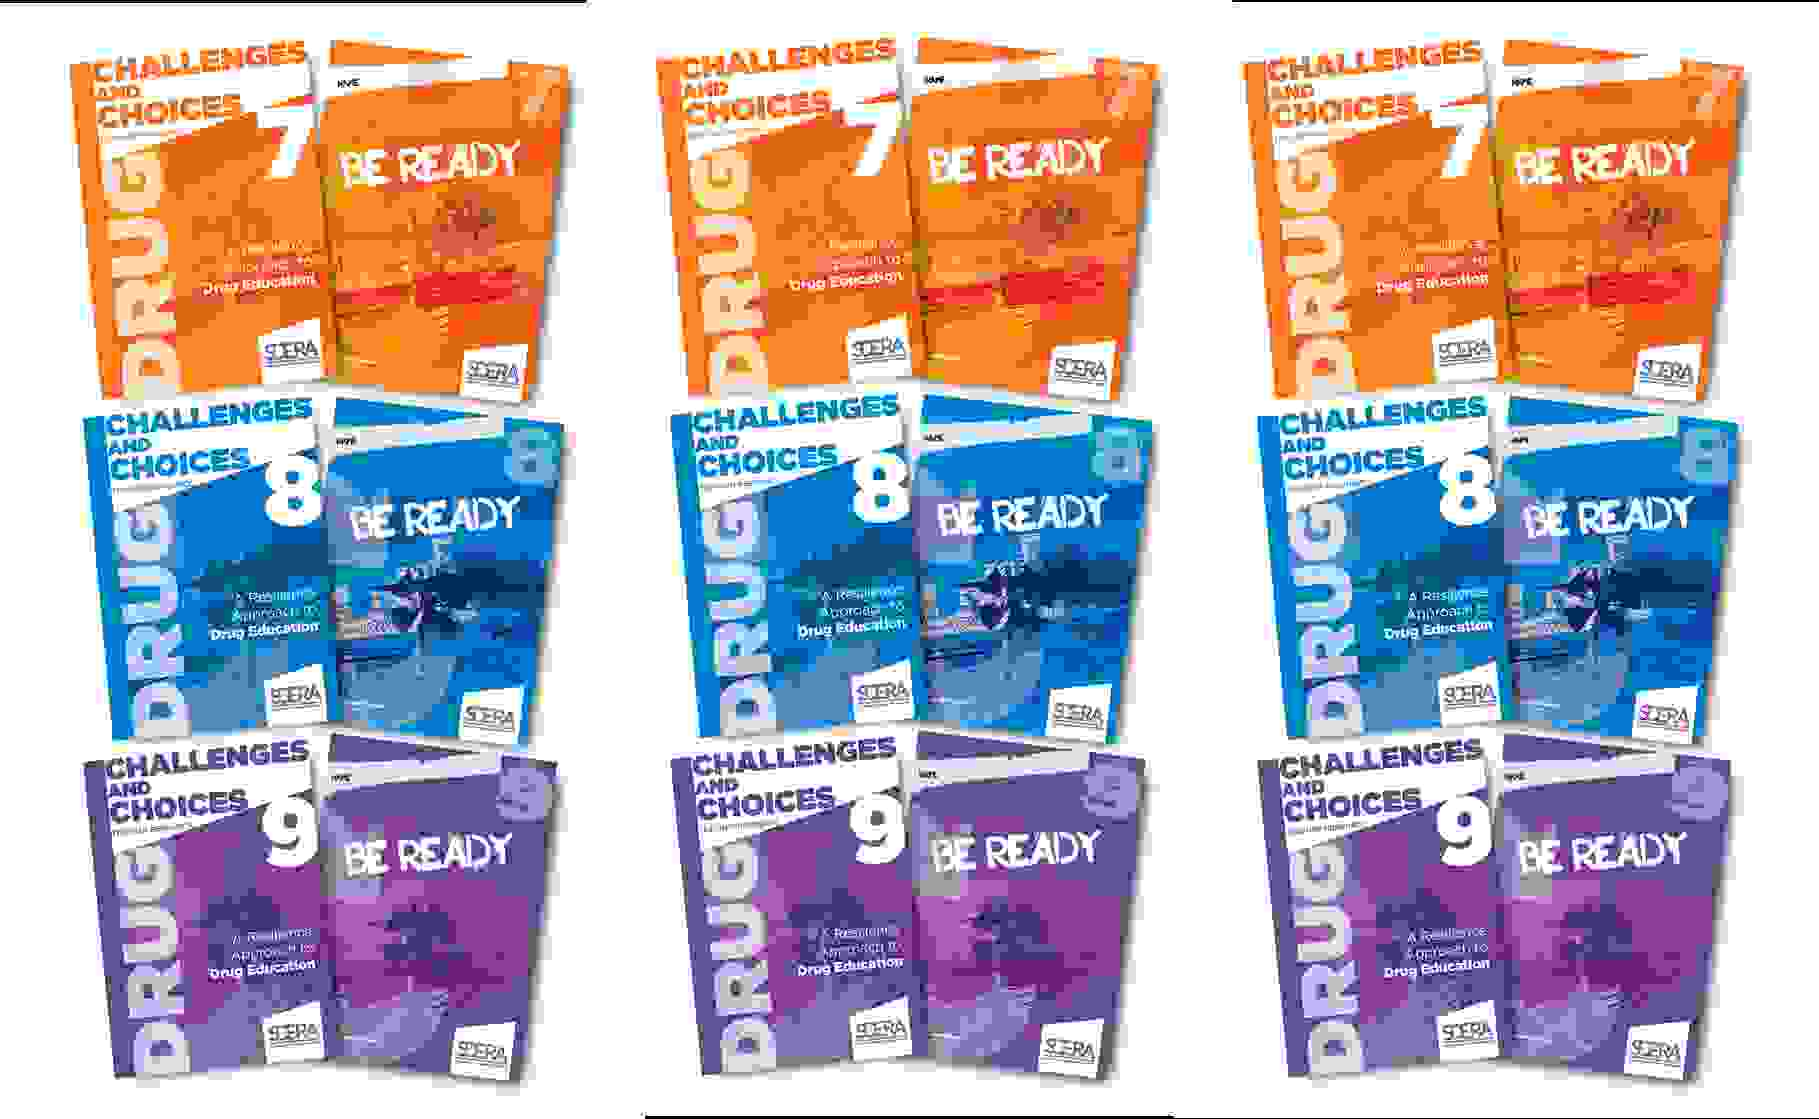 New Alcohol and Other Drugs Education Resources